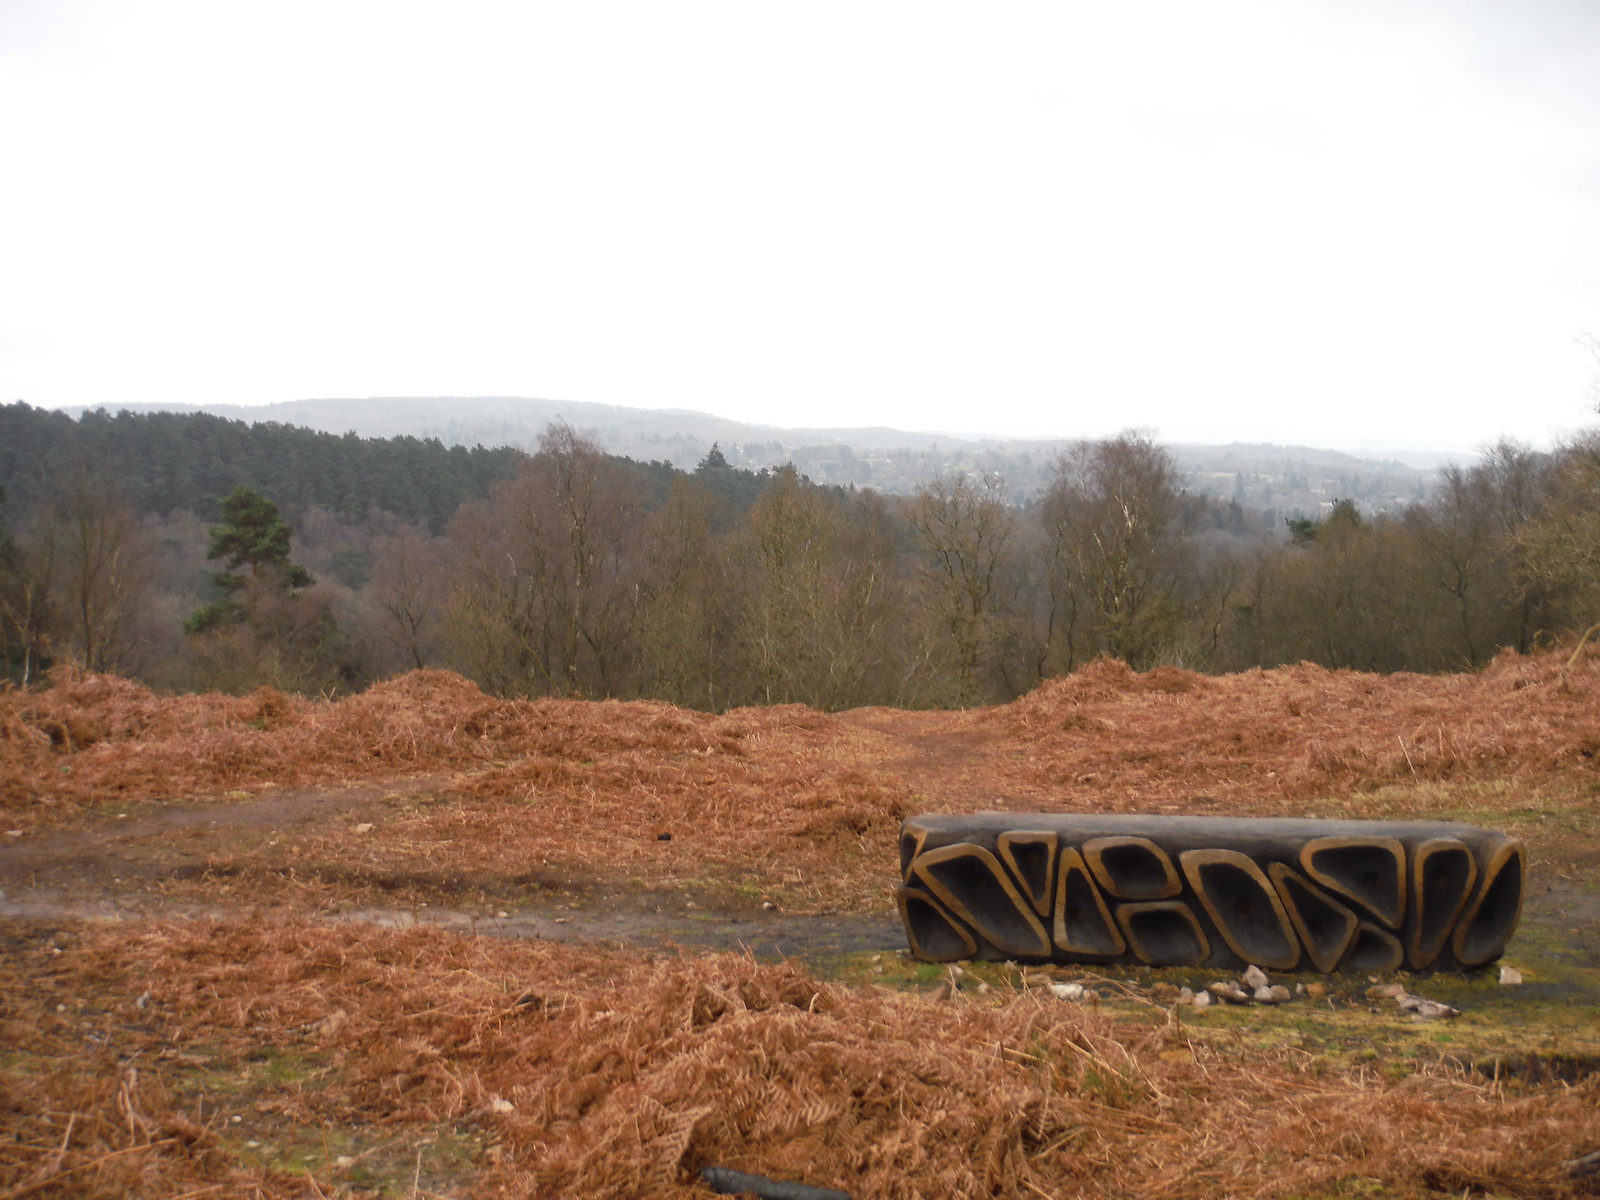 Gibbet Hill, 'Xylem'-bench (see: surreyhills.org/artworks), Southerly Views SWC Walk 144 Haslemere to Farnham